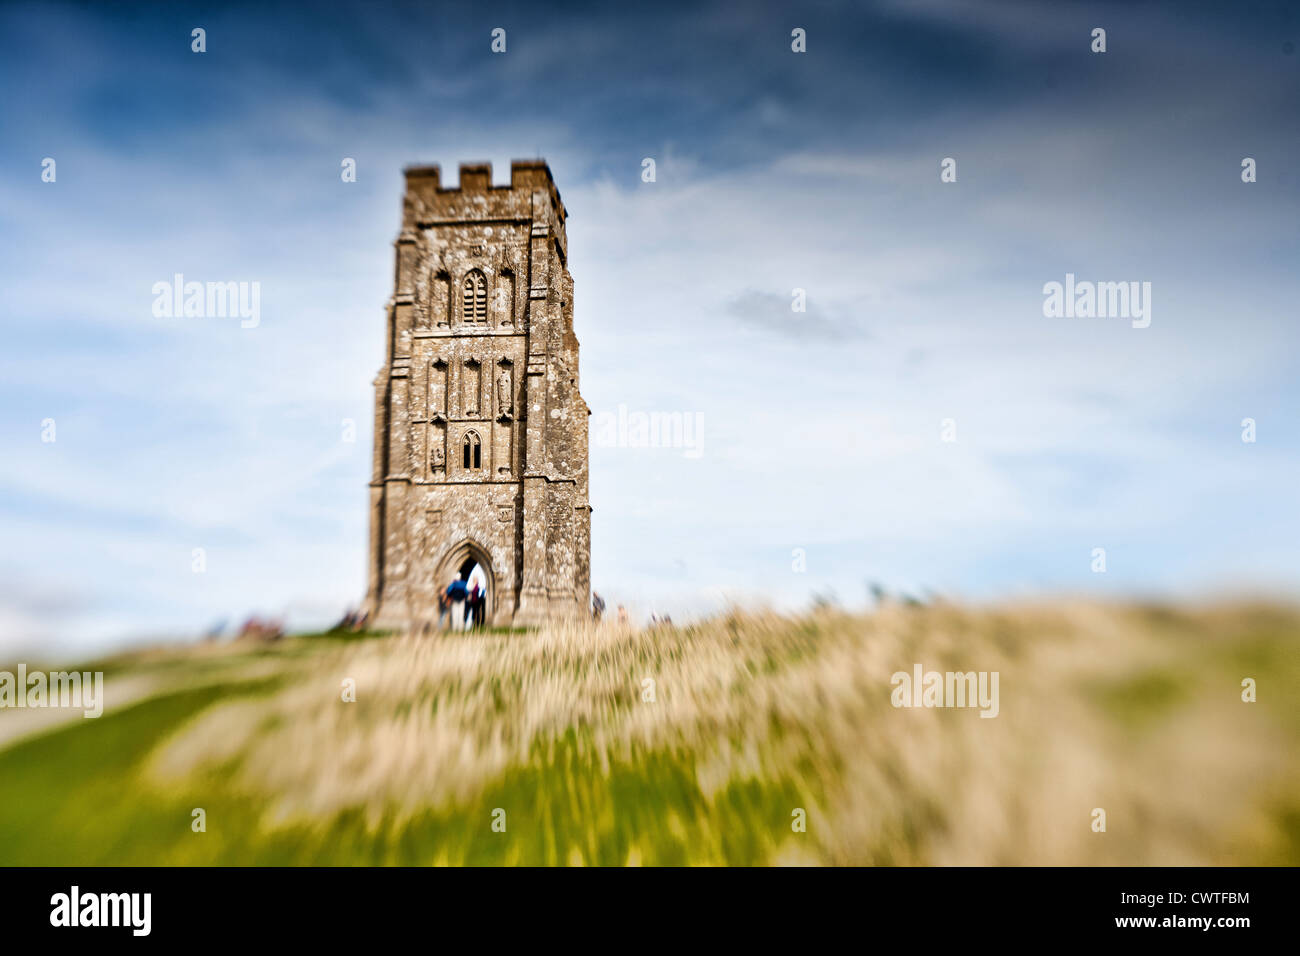 St Michael's Tower on Glastonbury Tor in Somerset England. - Stock Image